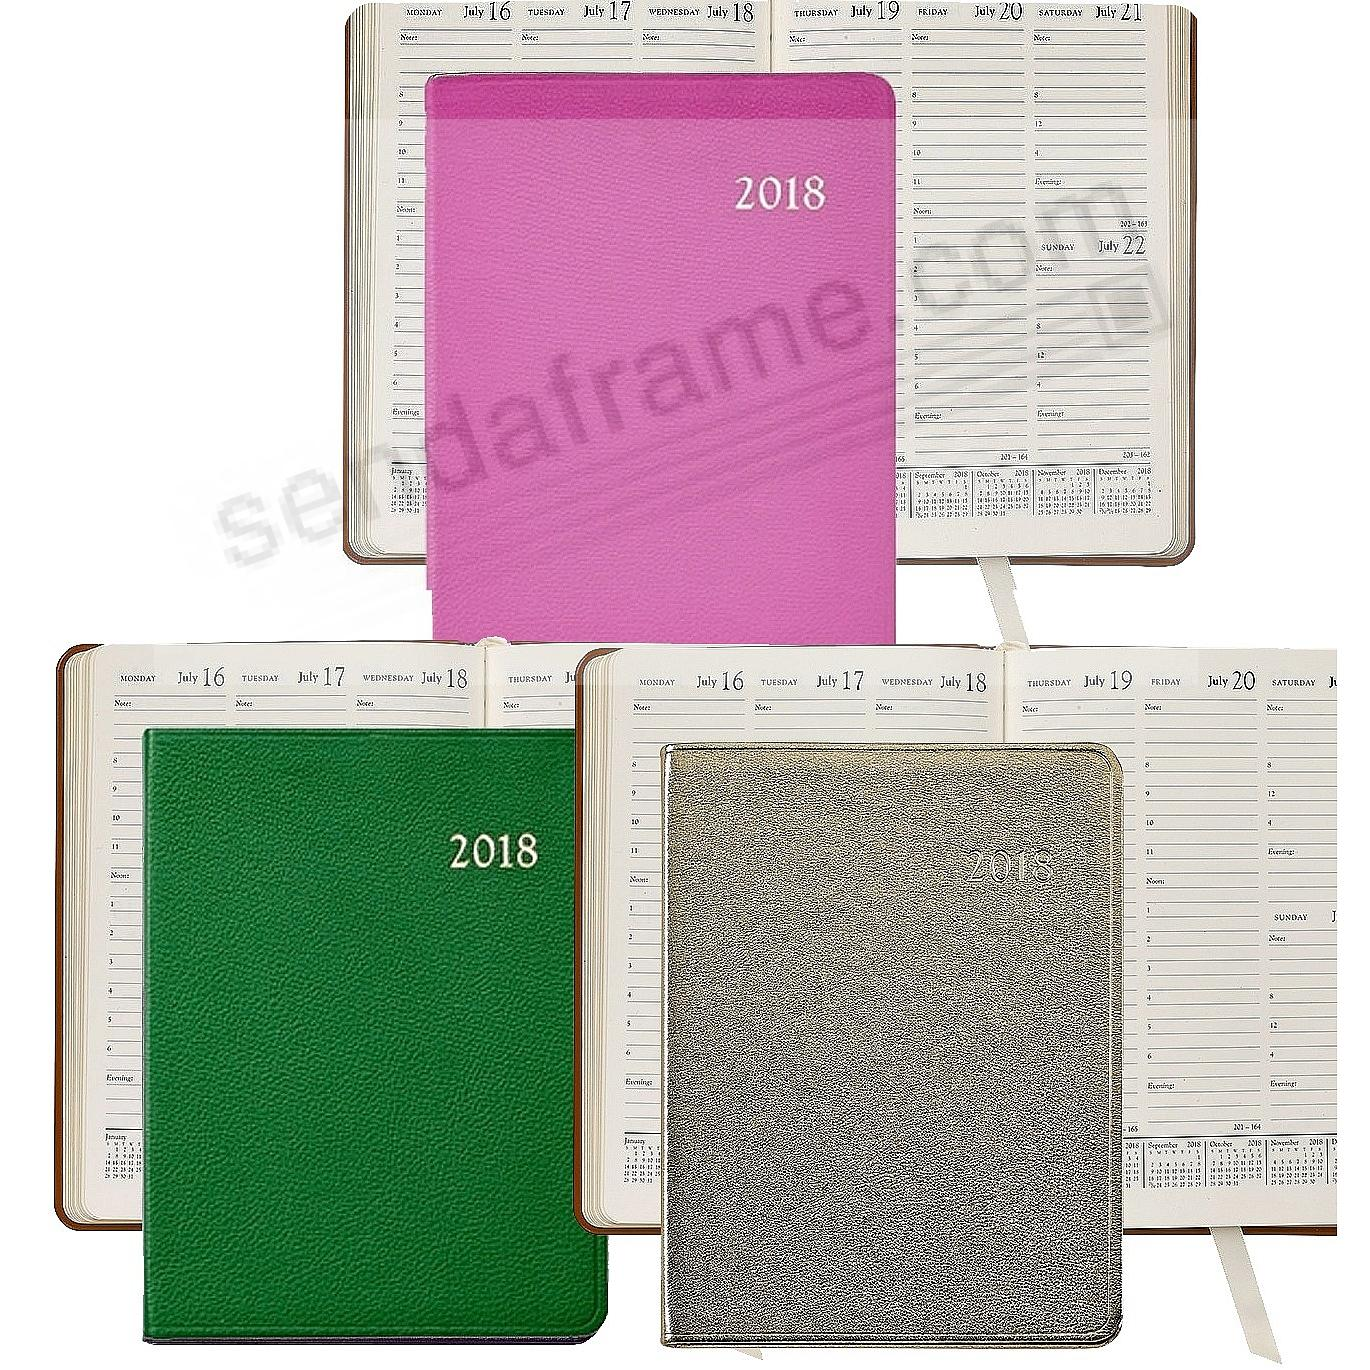 2018 Desk Diary 9inch Leather by Graphic Image™ - ASSORTED